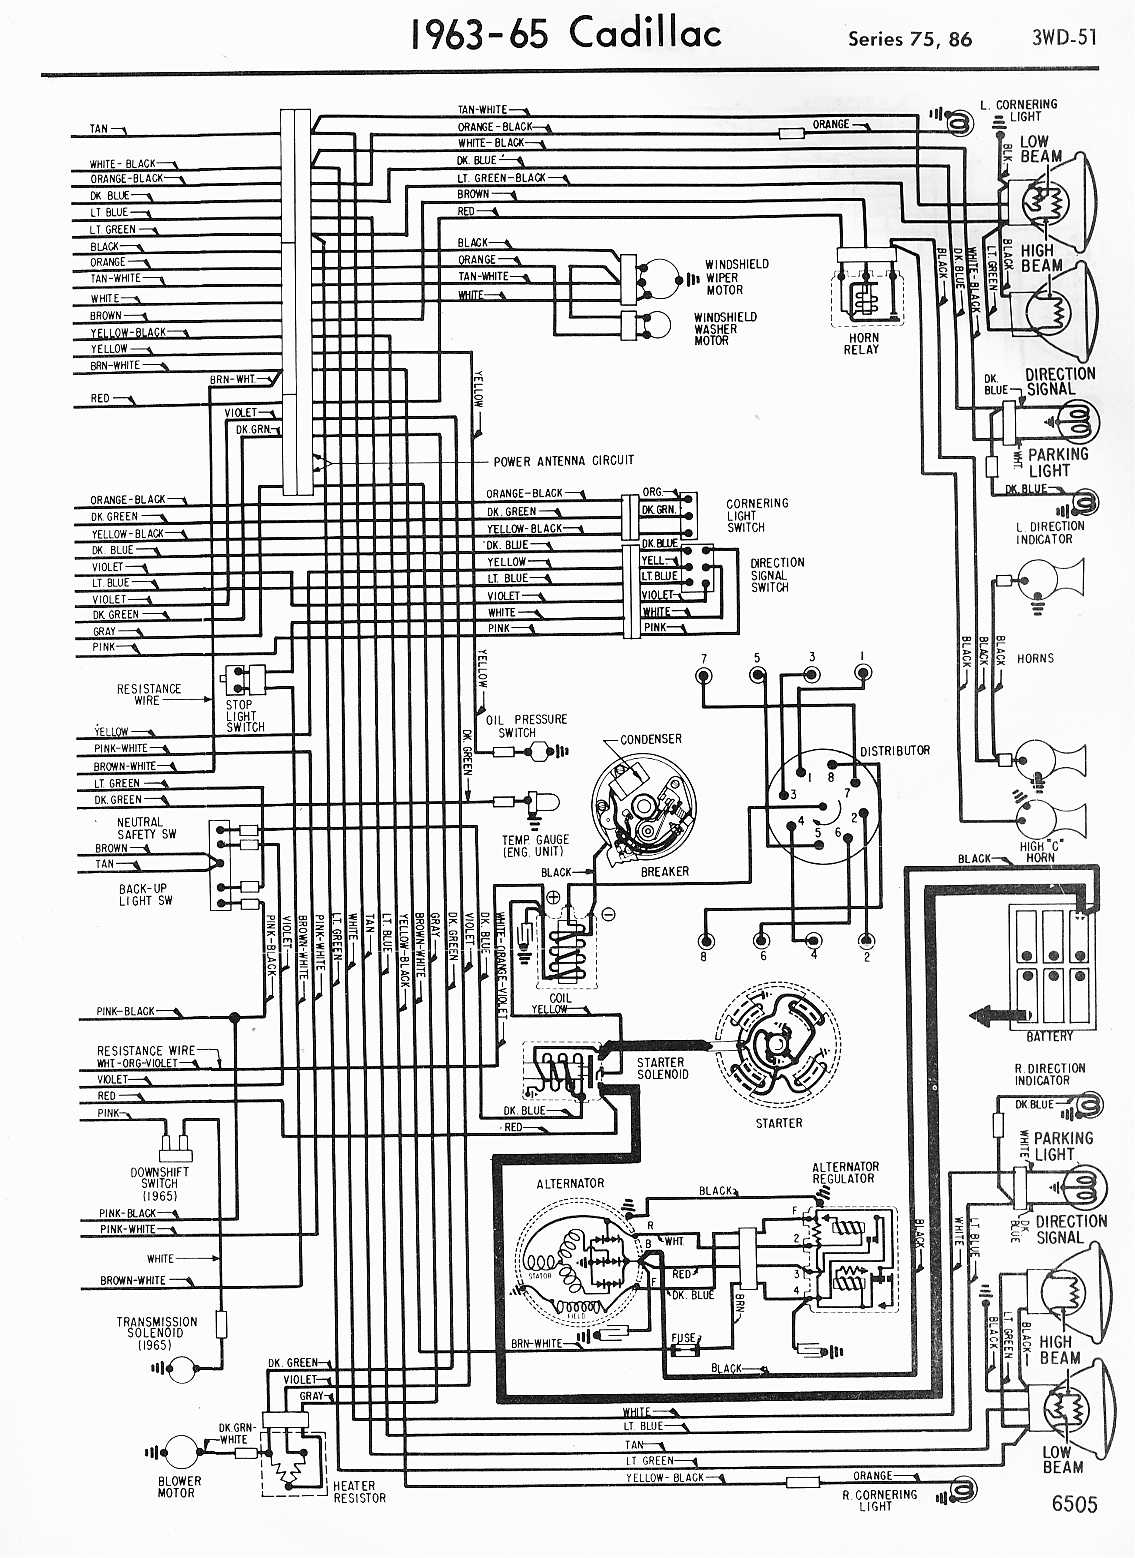 57 Chevy Fuse Box Location Auto Electrical Wiring Diagram Relay Honeywell R8222u 1071 Cadillac Diagrams 1957